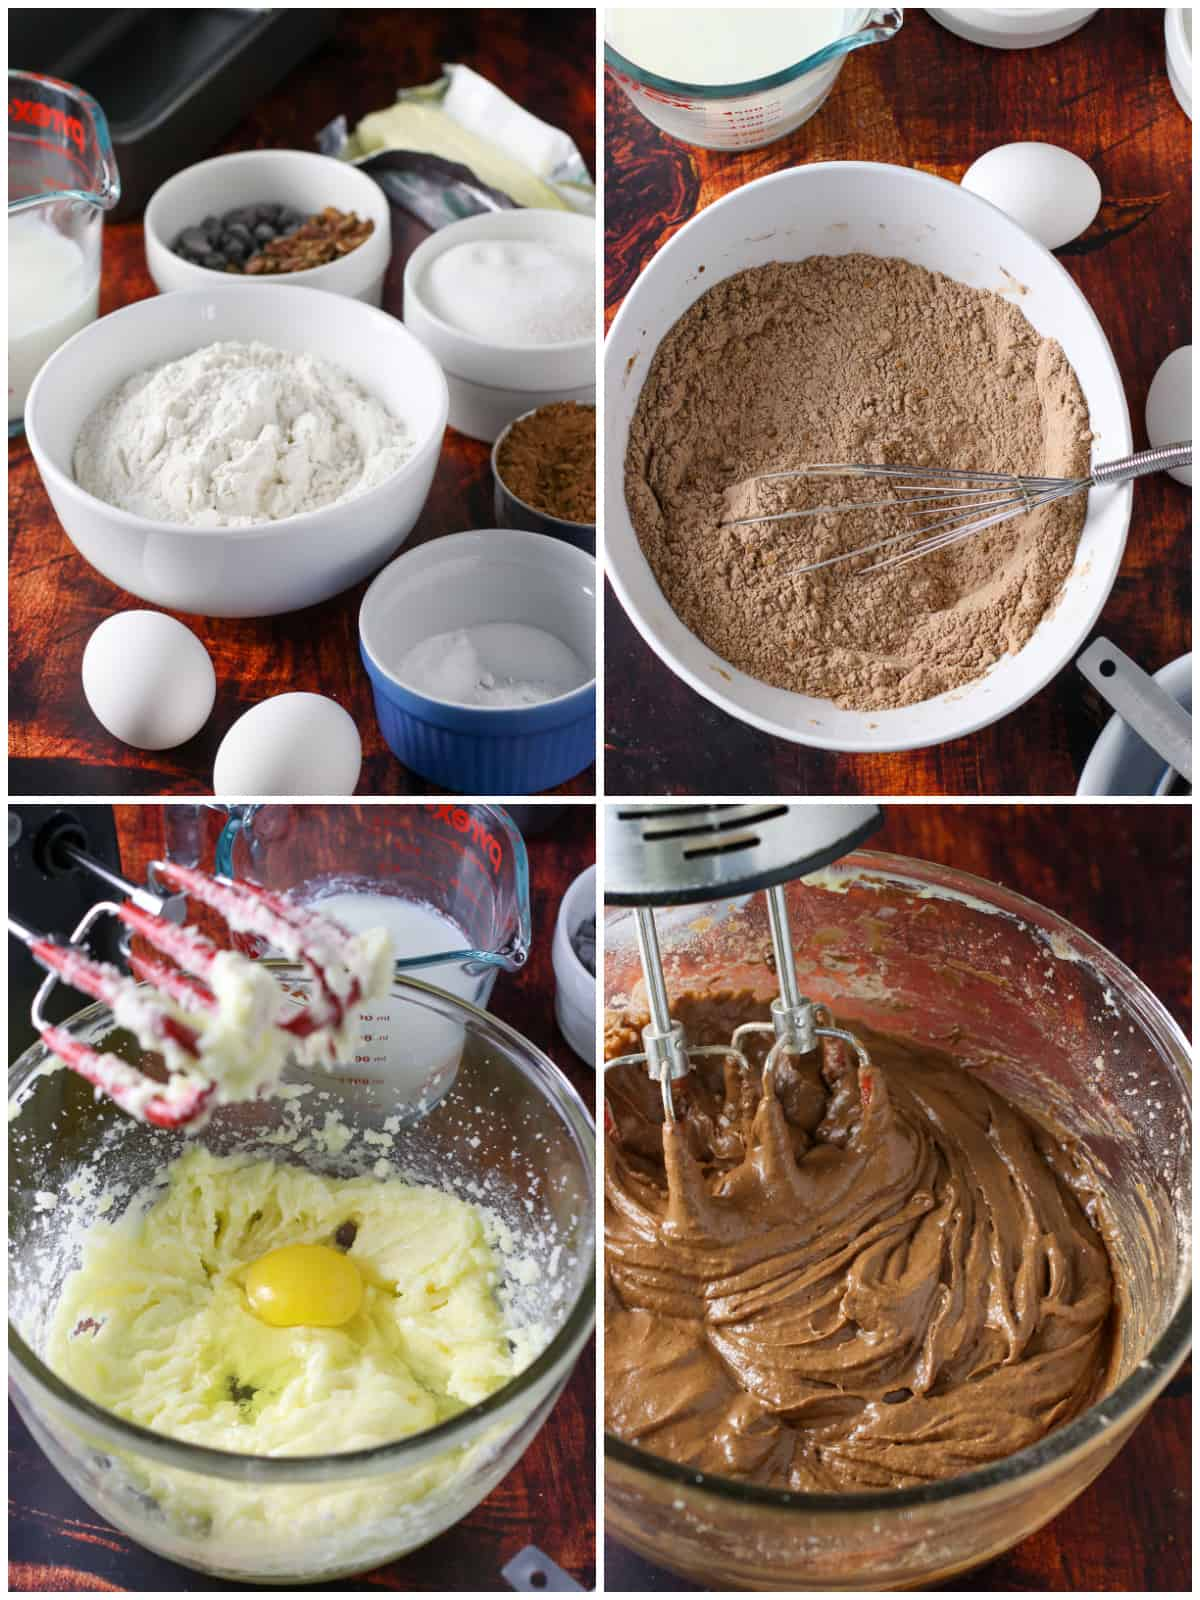 A collage showing how to make the chocolate chip loaf bread batter.